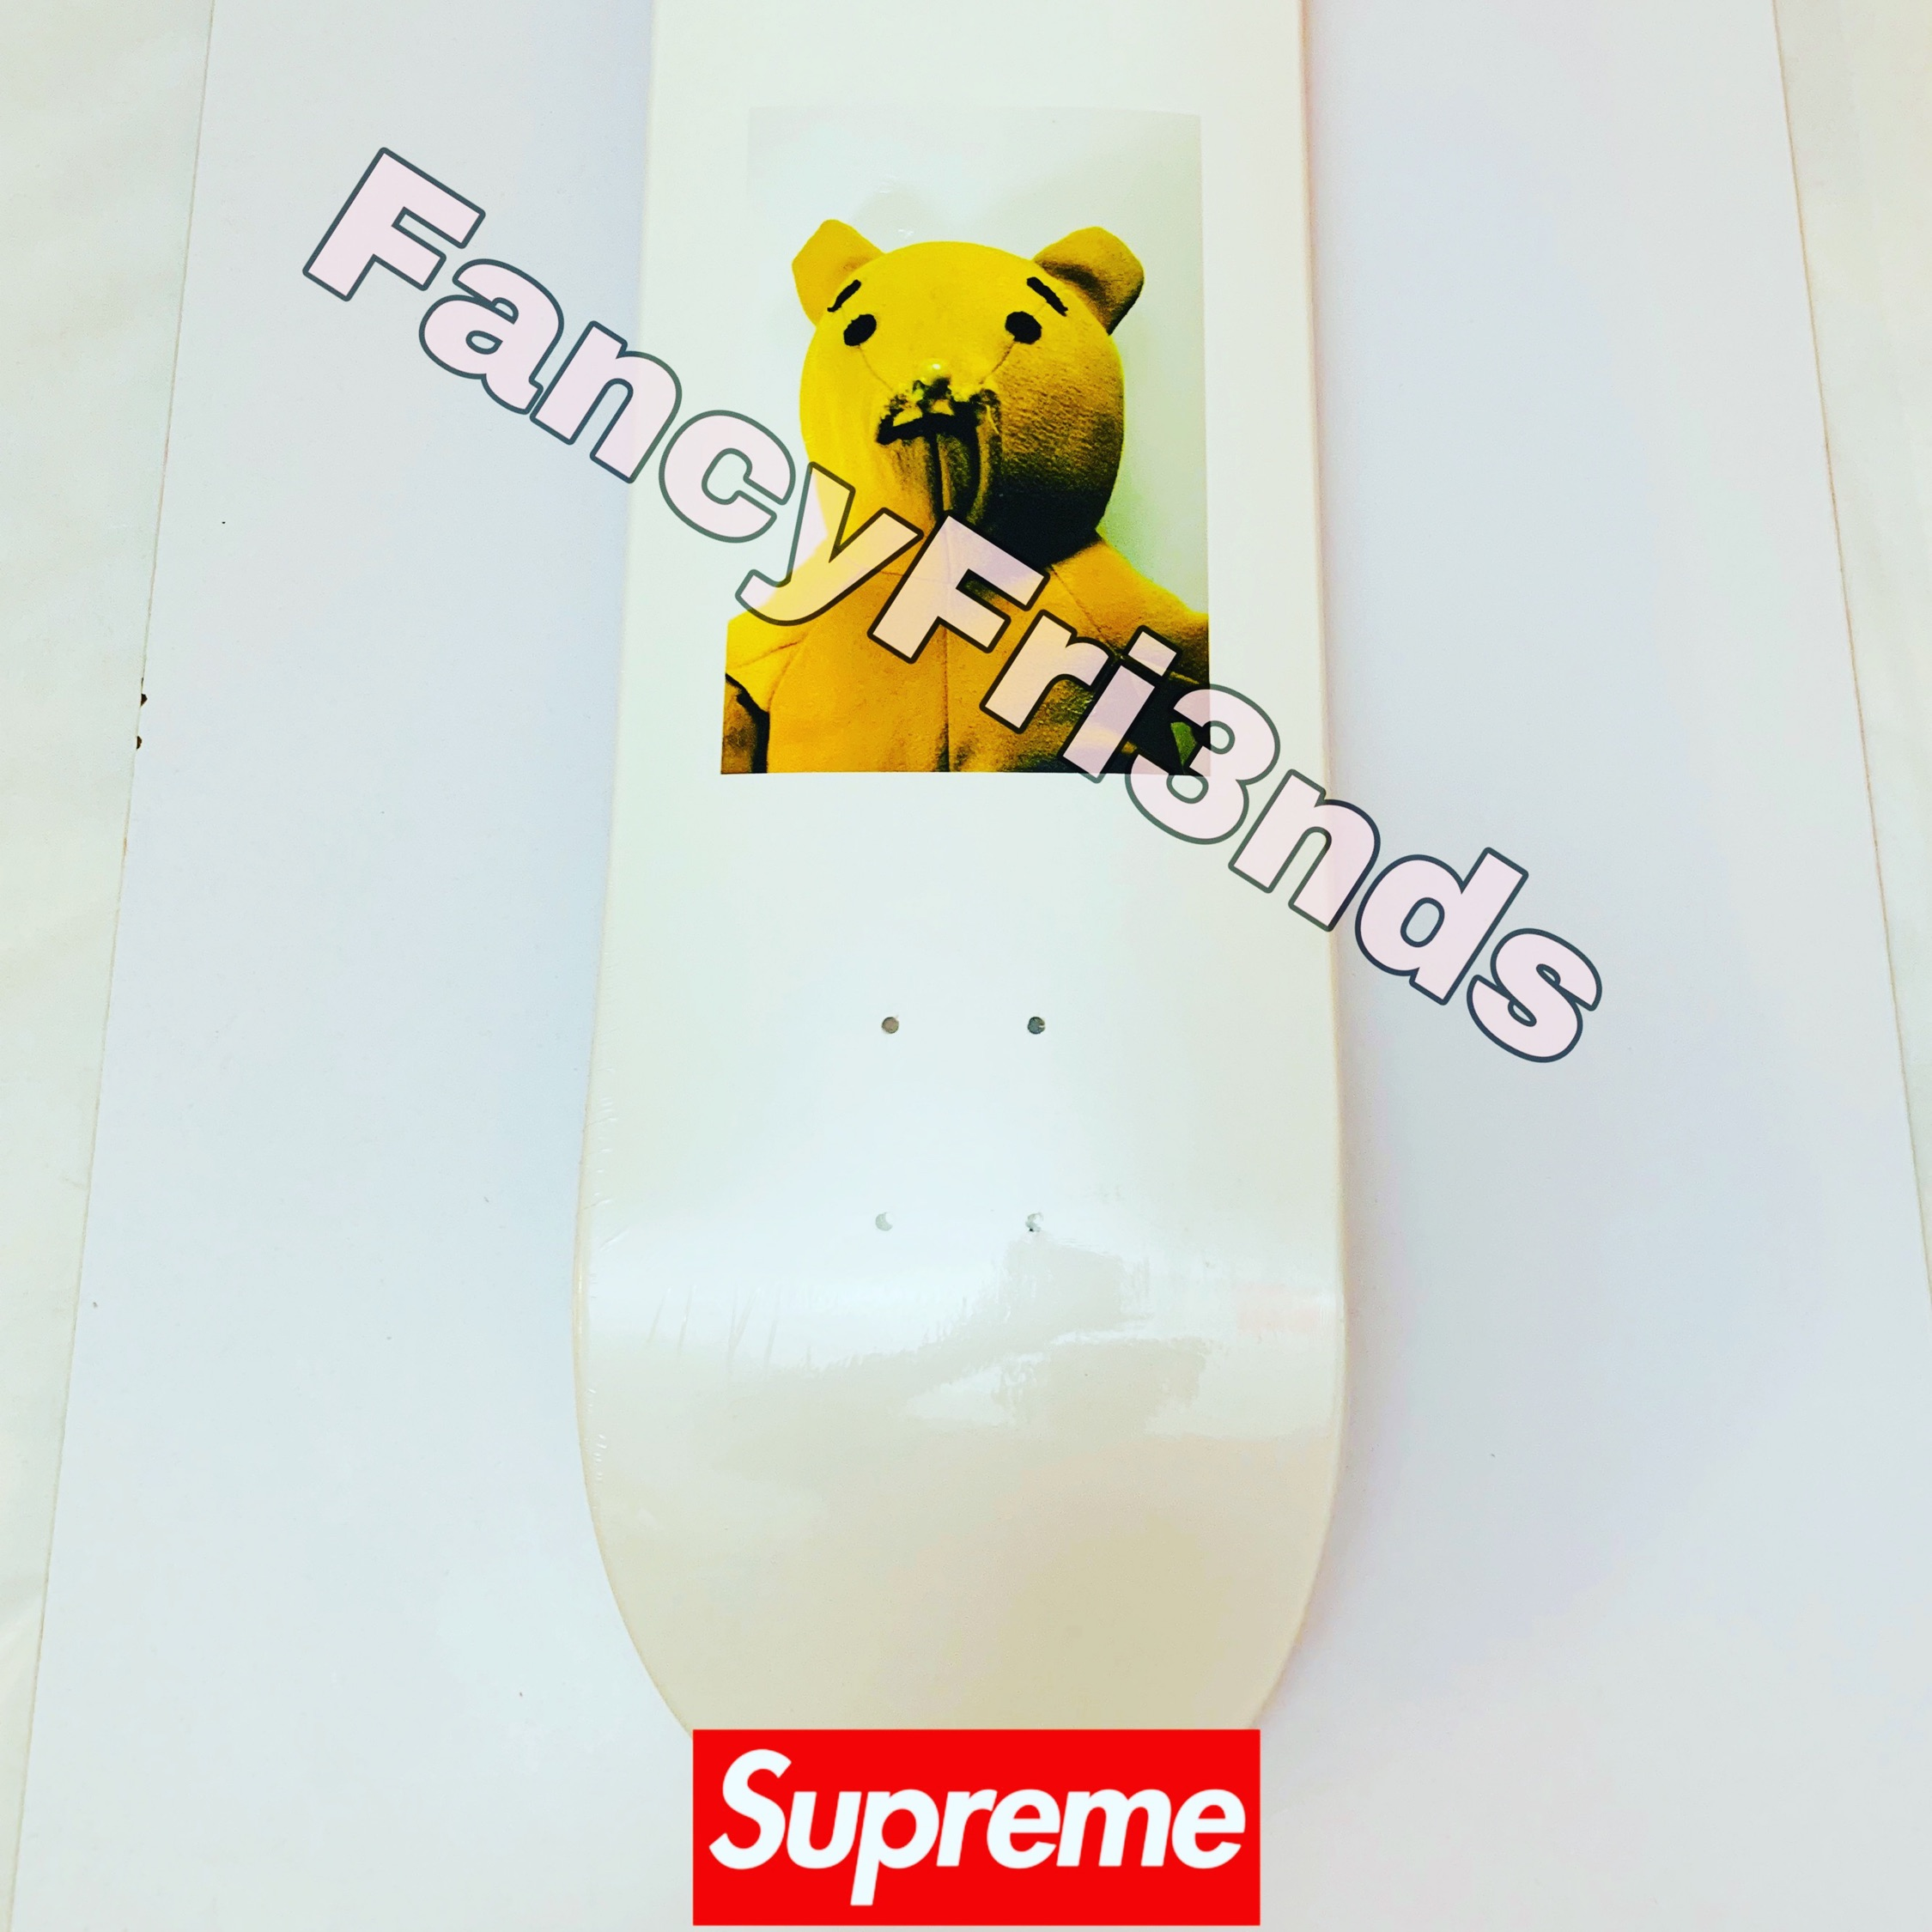 Supreme Mike Kelley Ahhyouth! Skateboard Deck #8